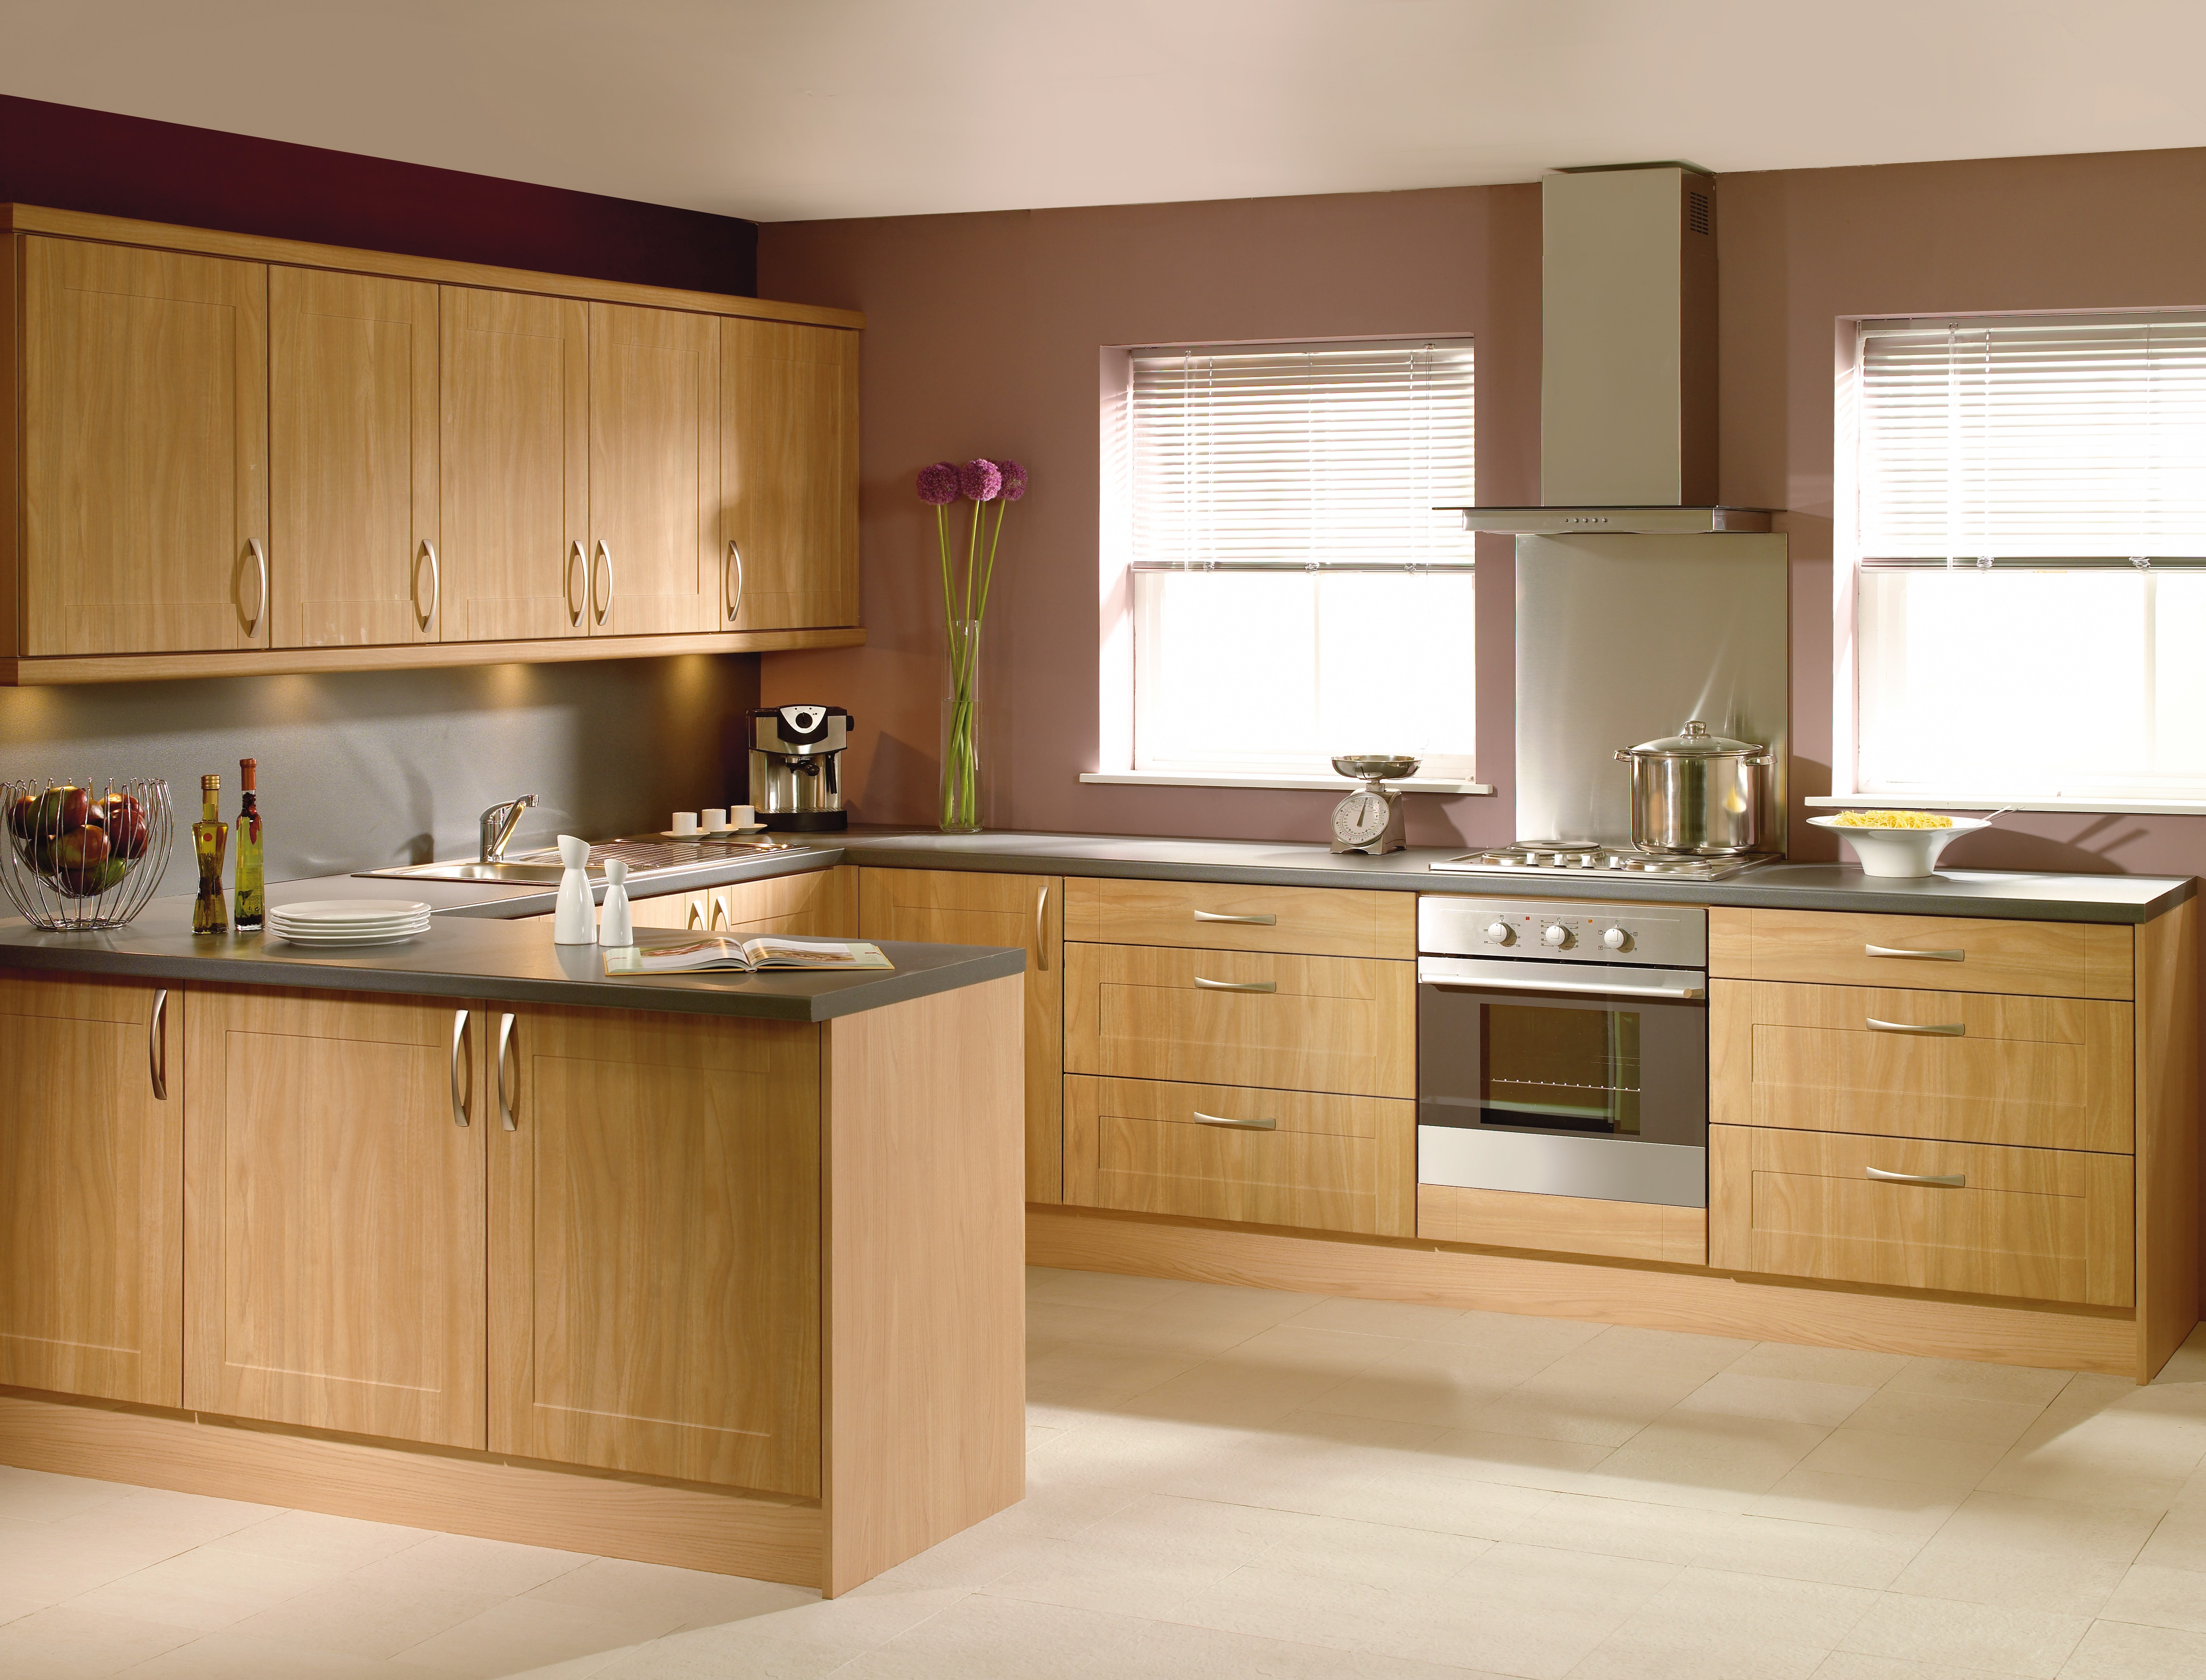 7-Essential-tips-for-a-perfect-kitchen_01